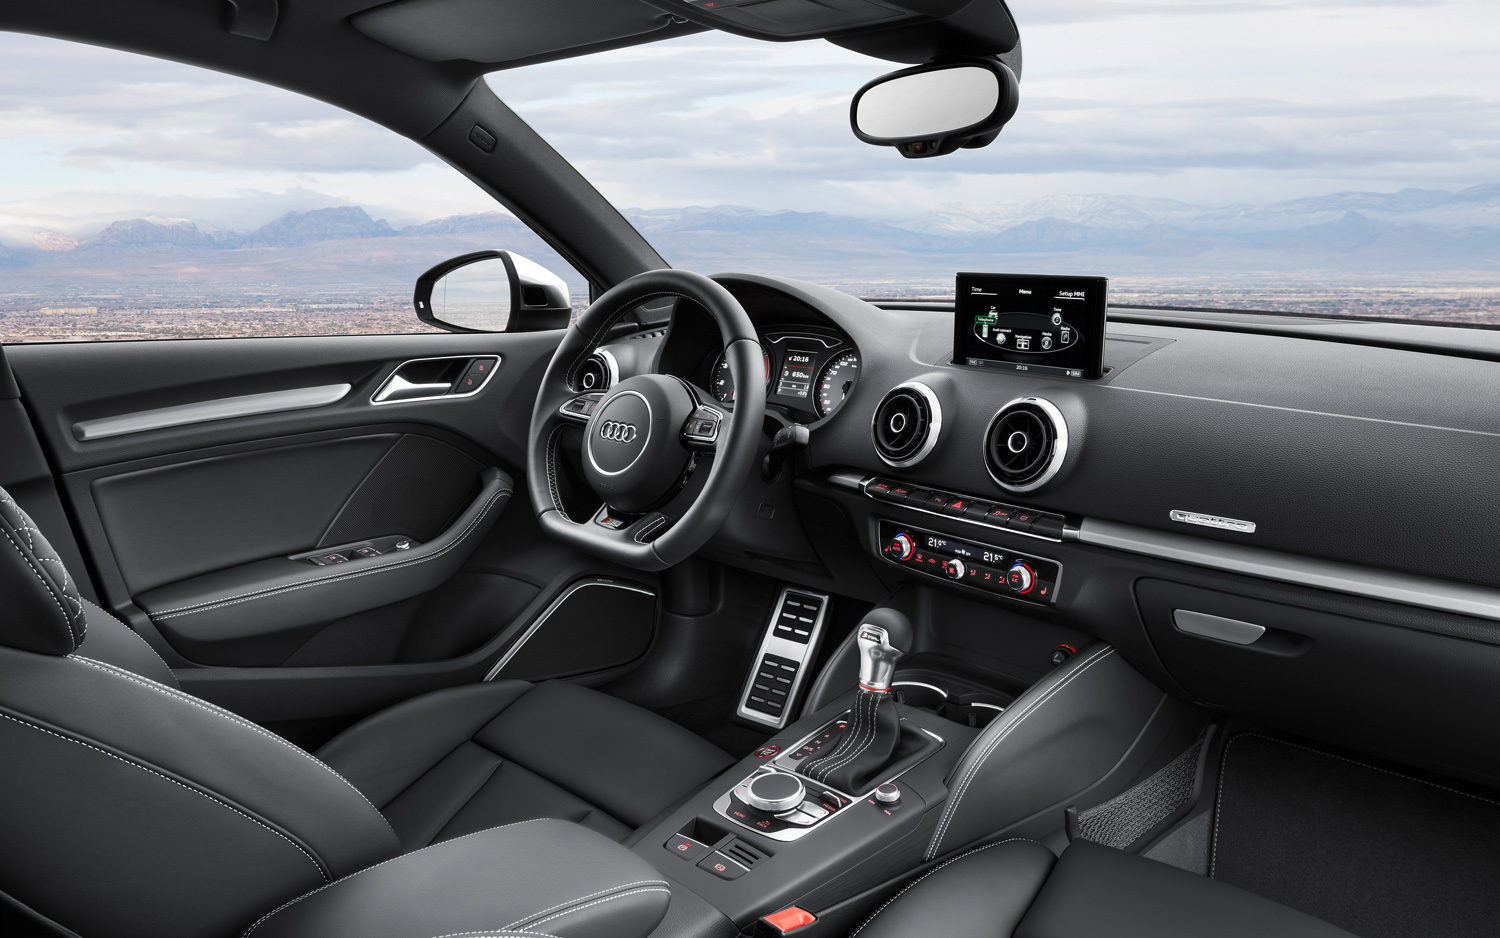 2015 Audi S3 Sedan Front Interior (Photo 5 of 10)